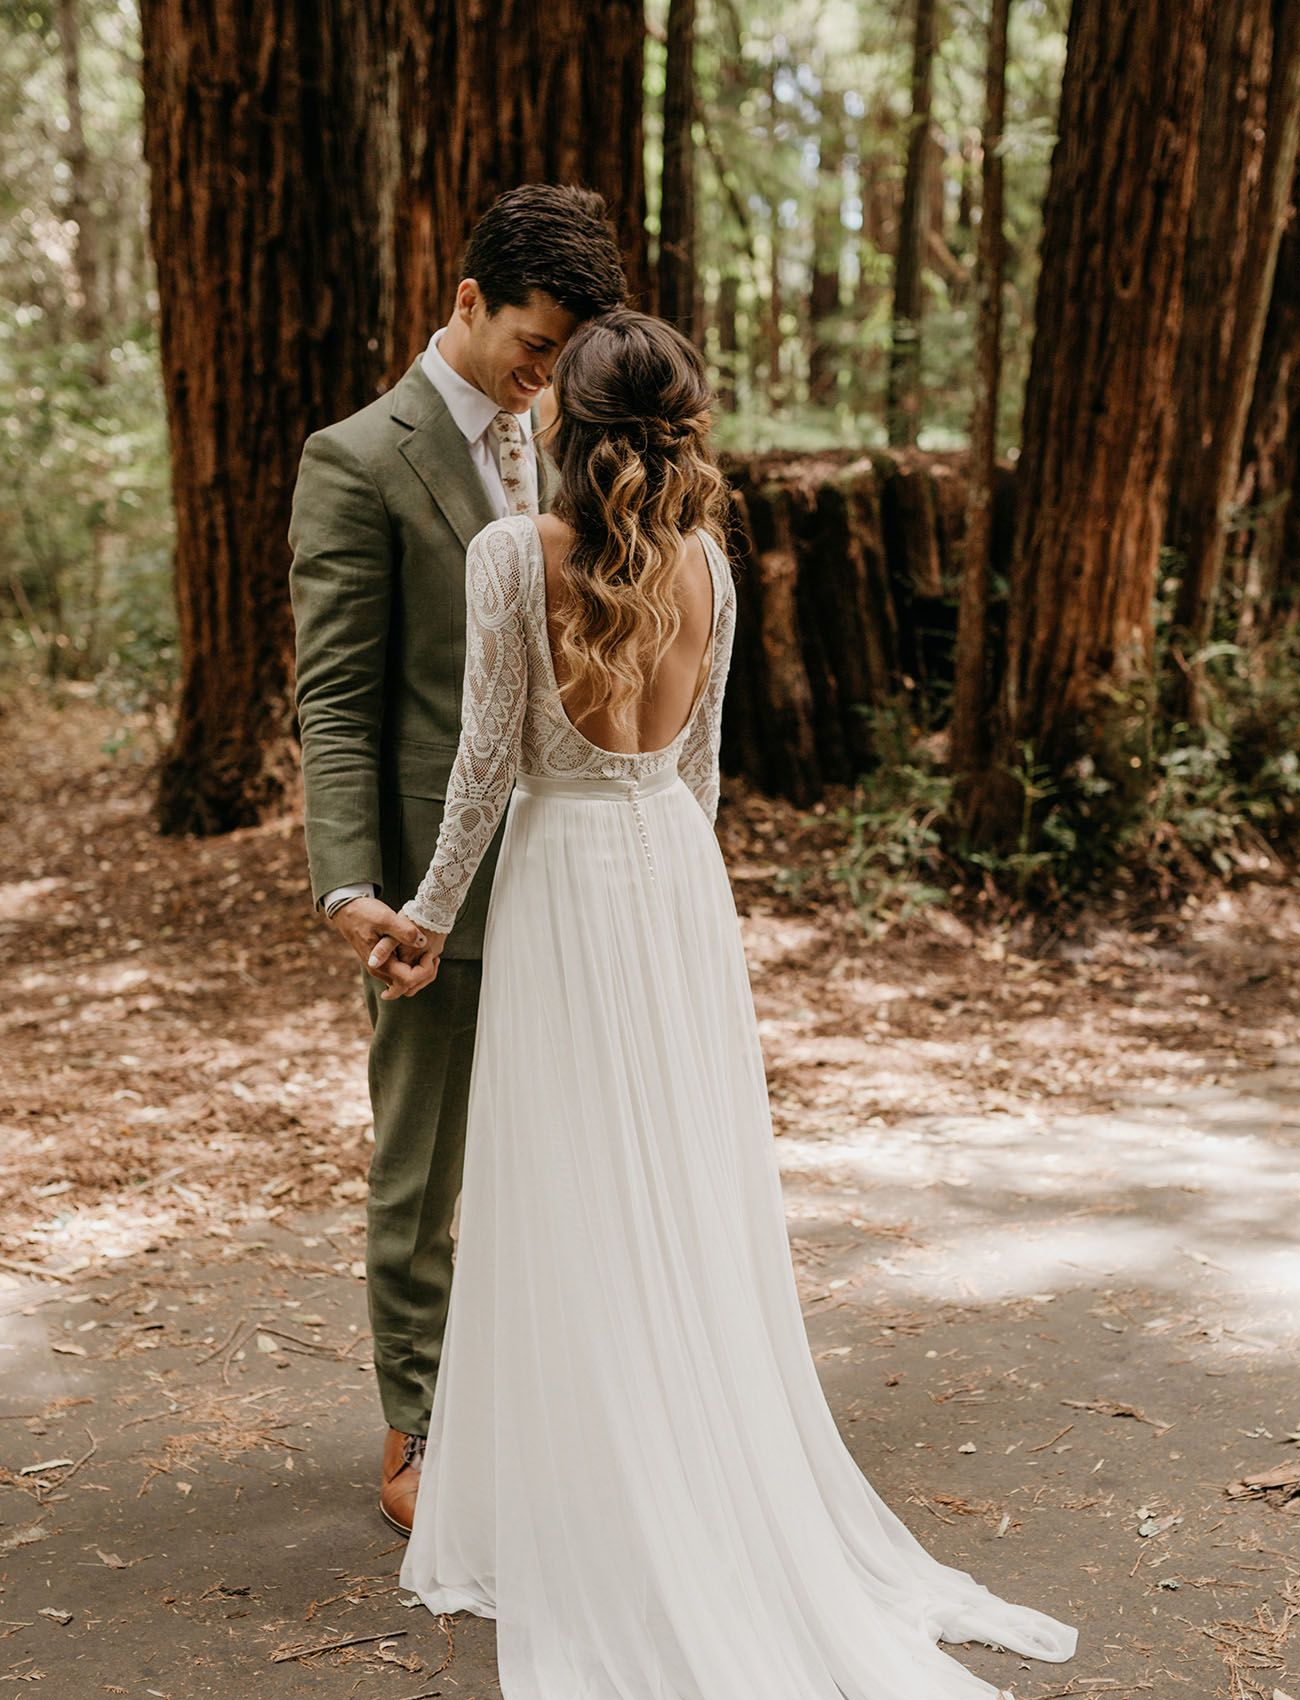 One long adventure a rustic wedding in the redwoods with a copper